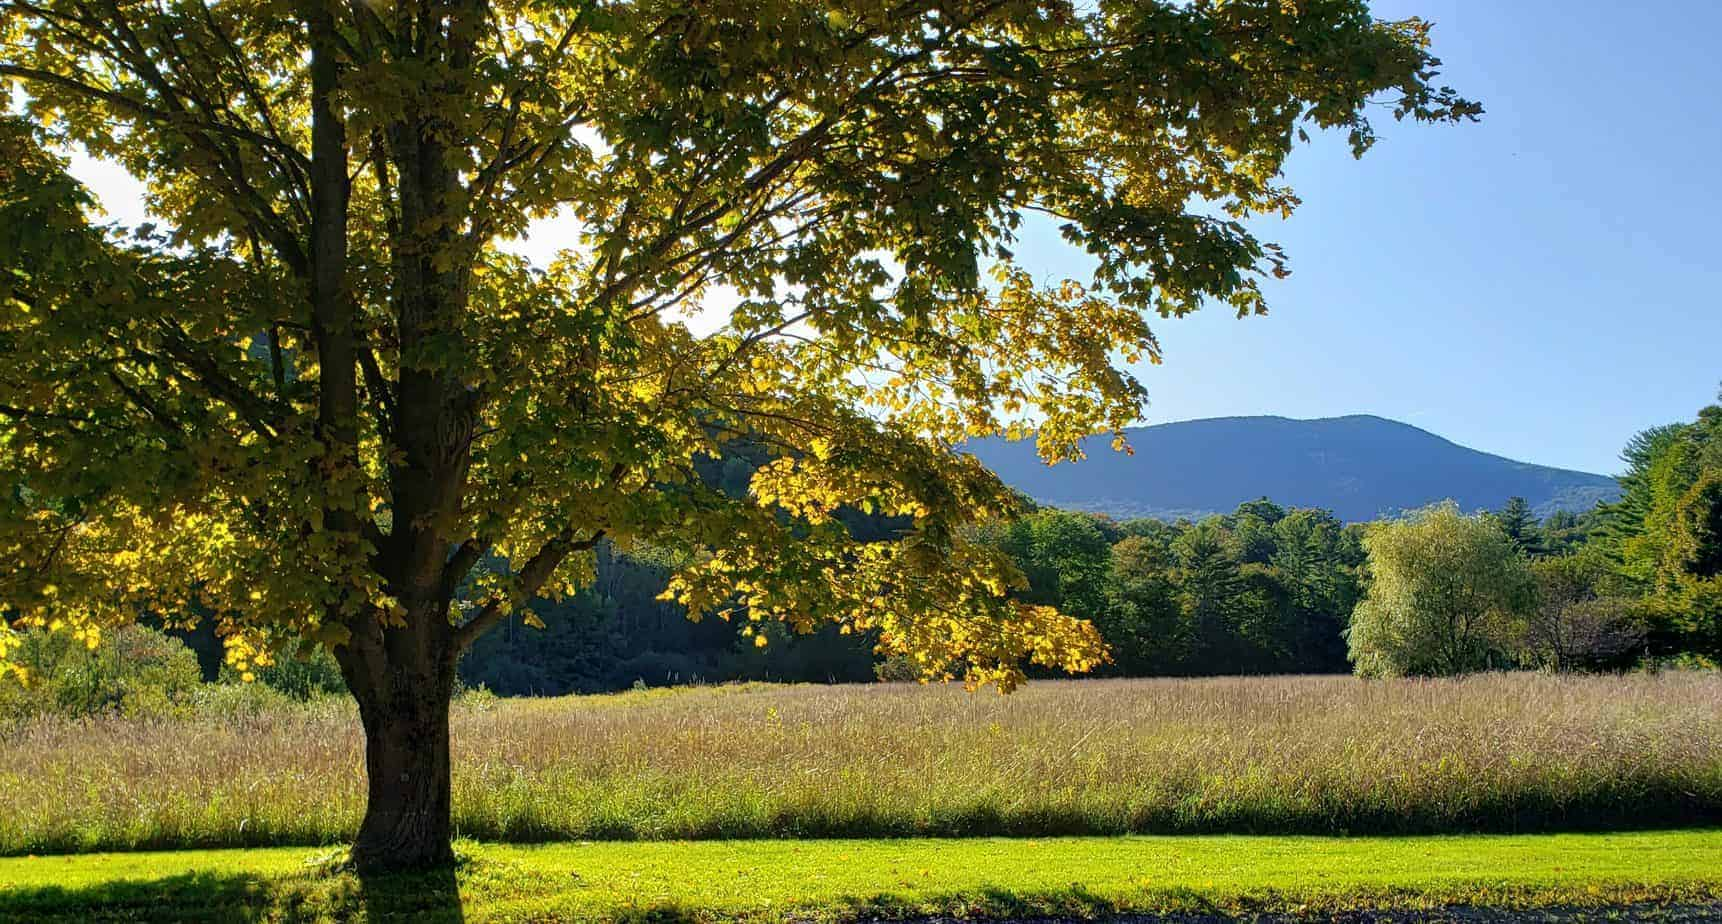 things to do in manchester VT header image - golden sun illuminates a green field with a distant mountain in the background and a leafy tree in front